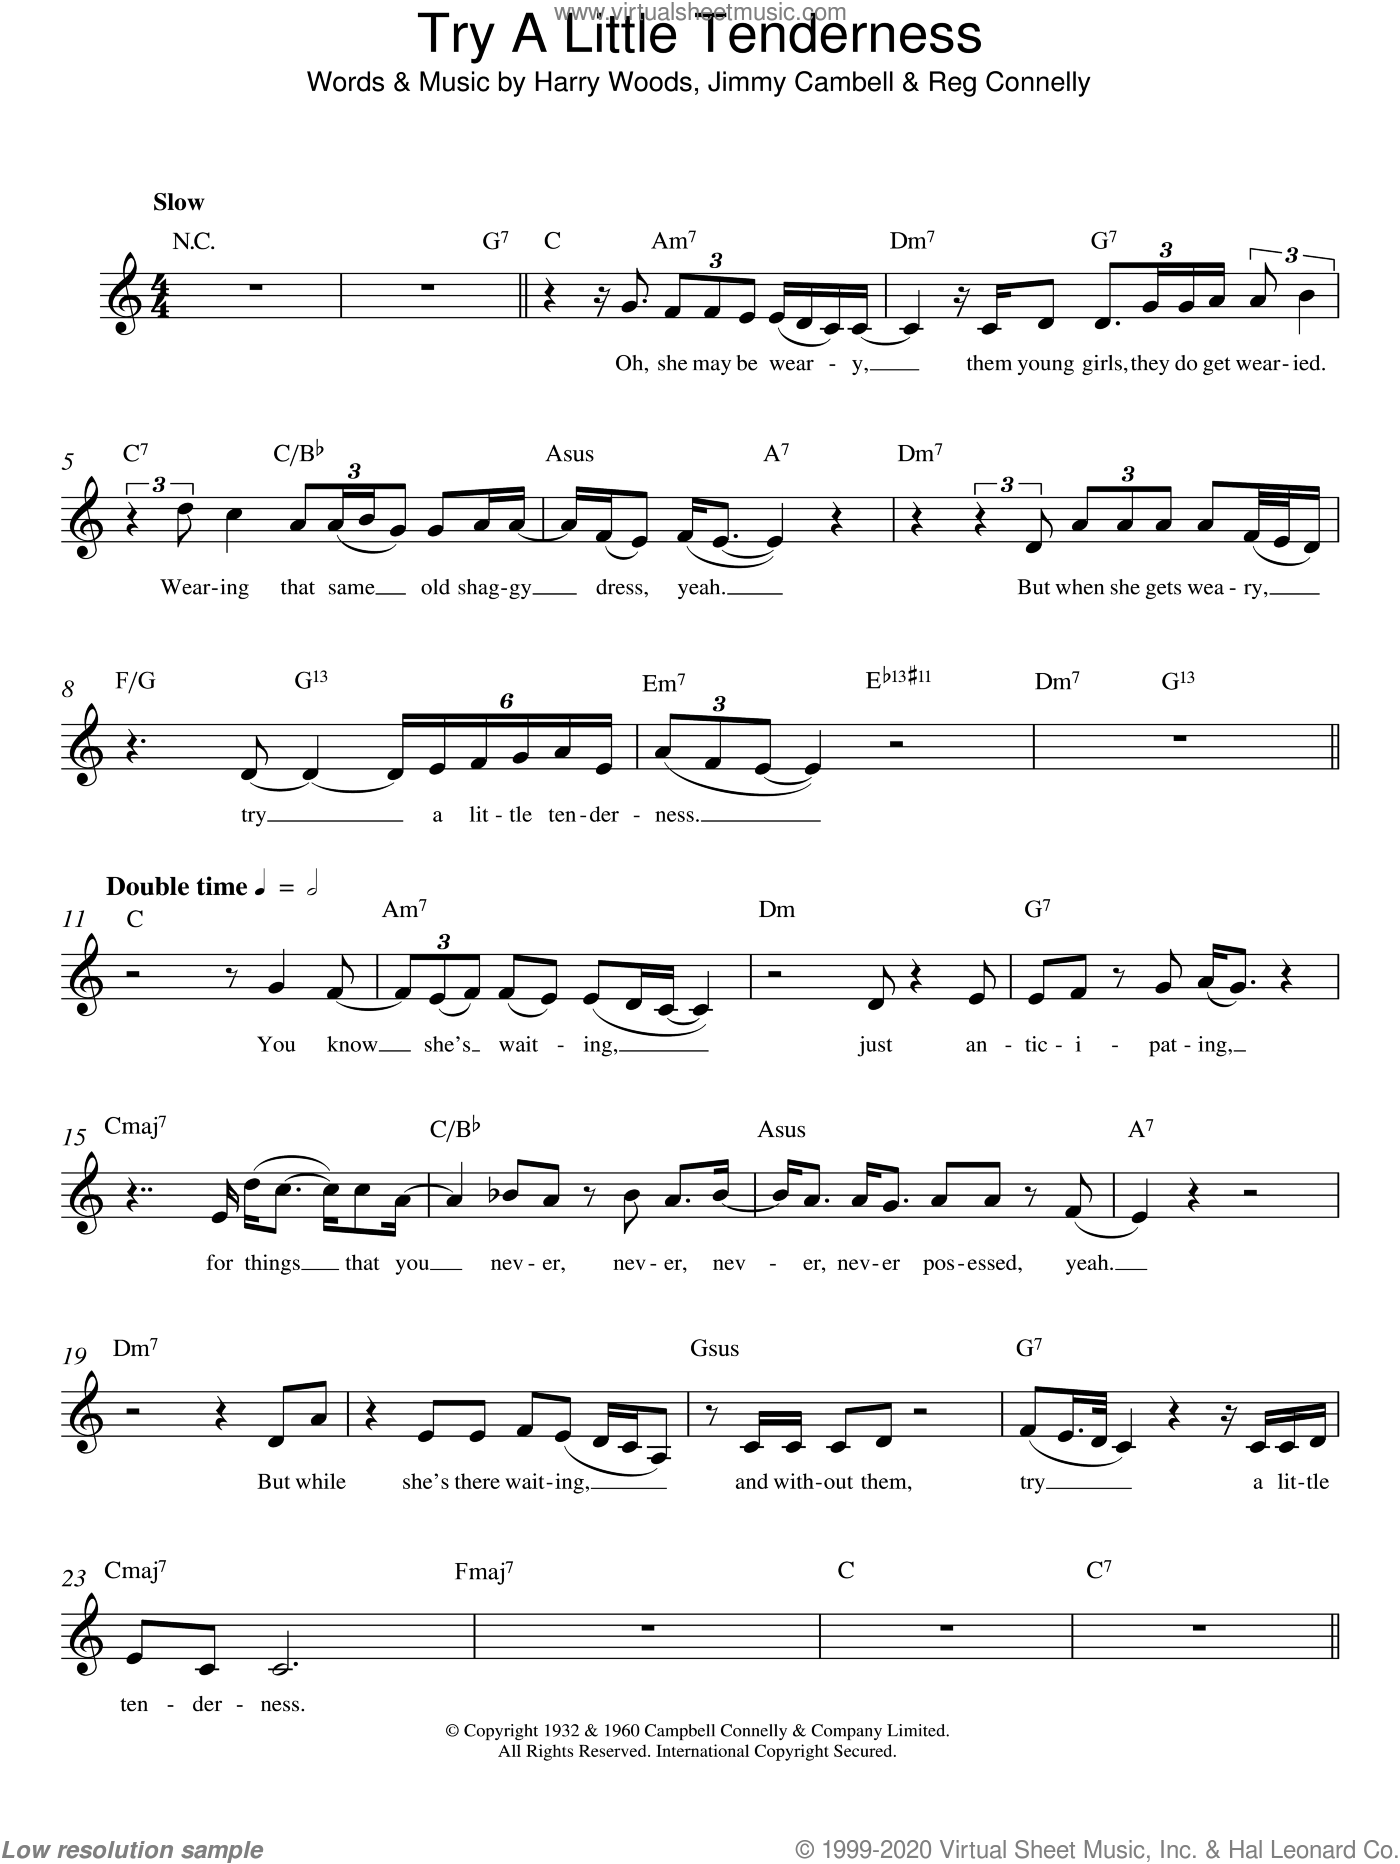 Try A Little Tenderness sheet music for voice and other instruments (fake book) by Otis Redding, Harry Woods, Jimmy Campbell and Reg Connelly, intermediate skill level